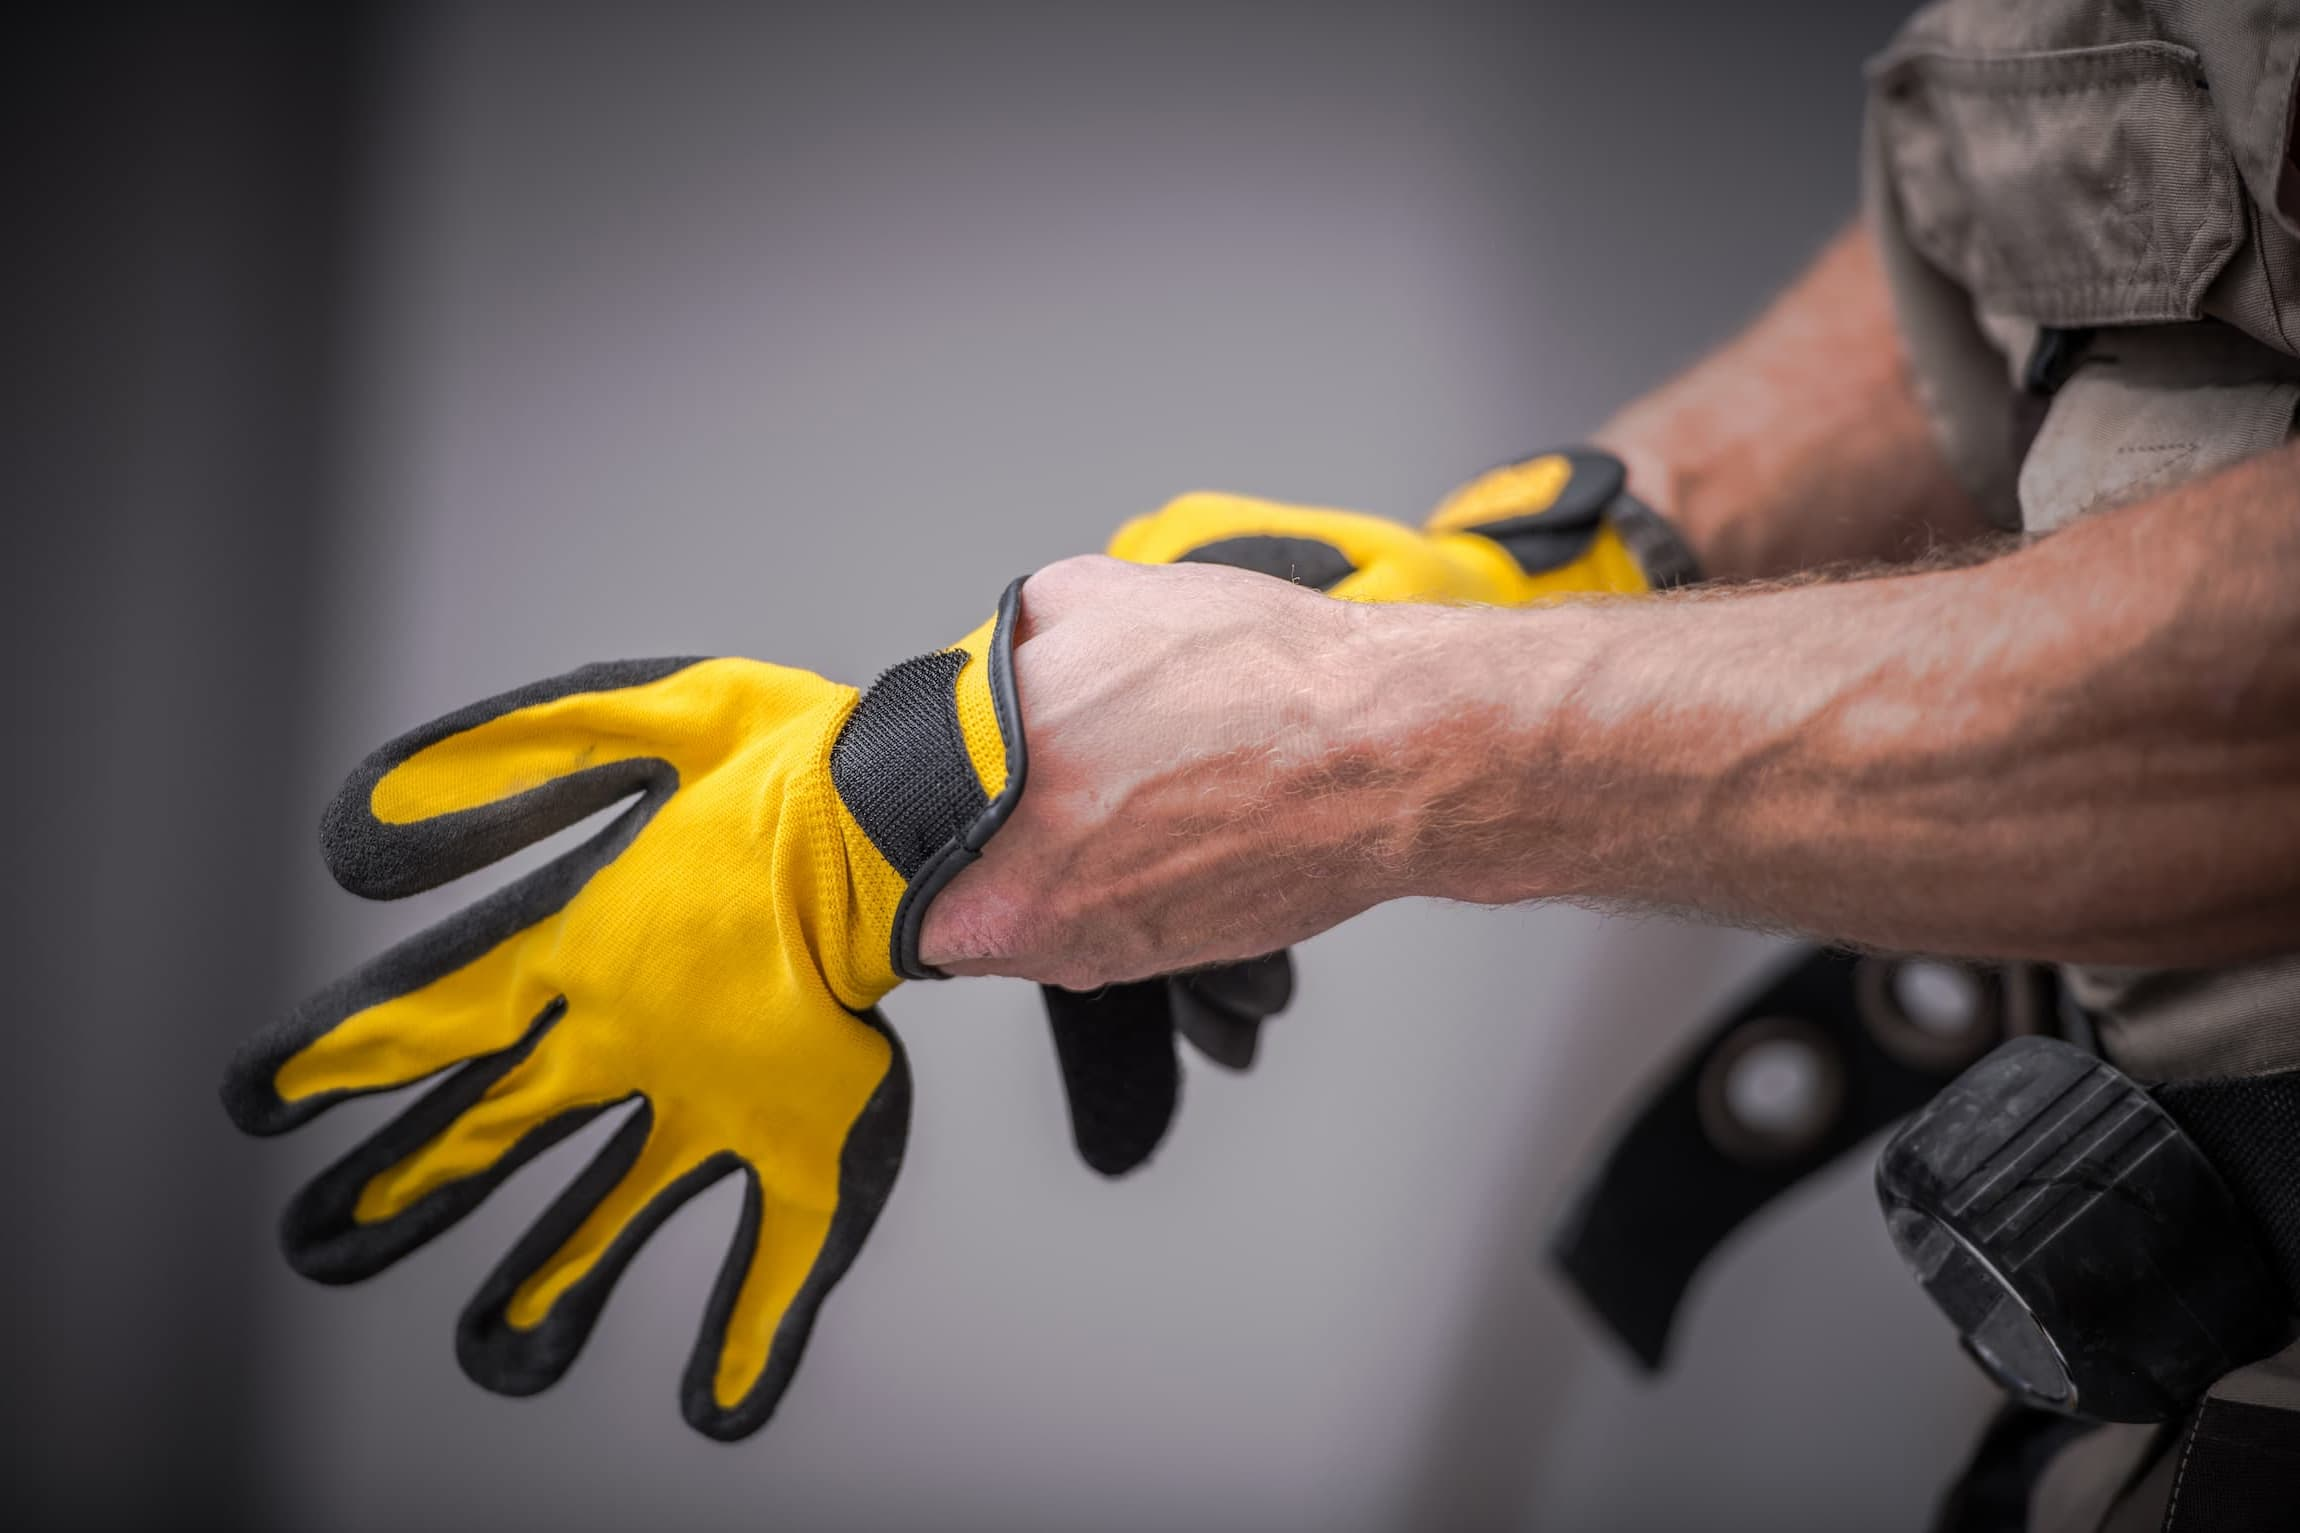 wearing-safety-gloves-PDWDQ2P (1) (1)